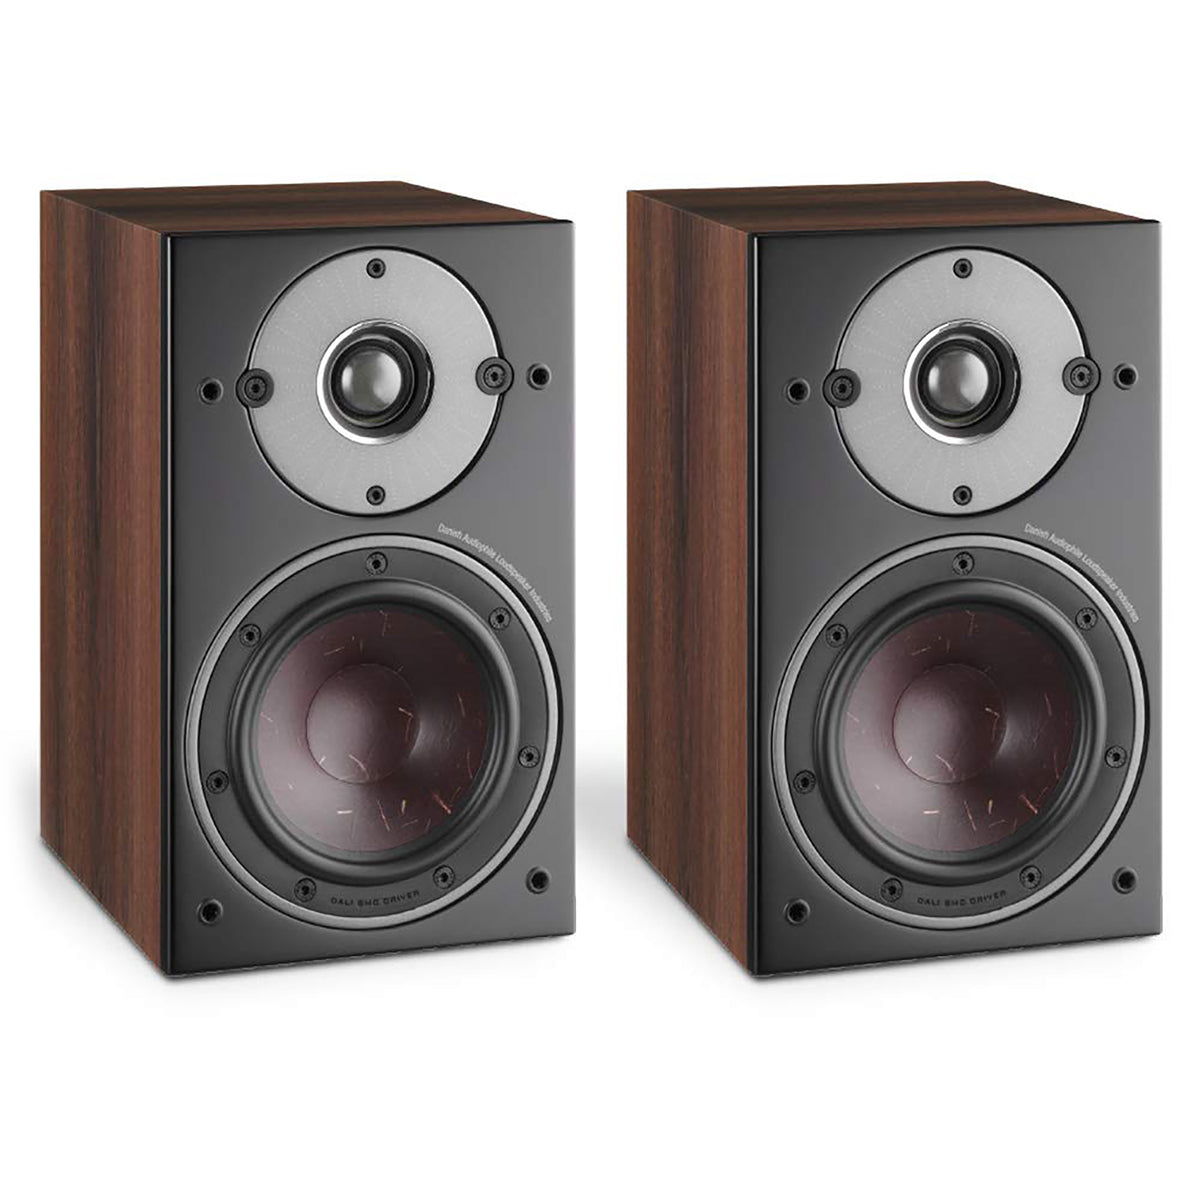 Dali: Oberon 1 Passive Bookshelf Speakers - Dark Walnut (Pair)